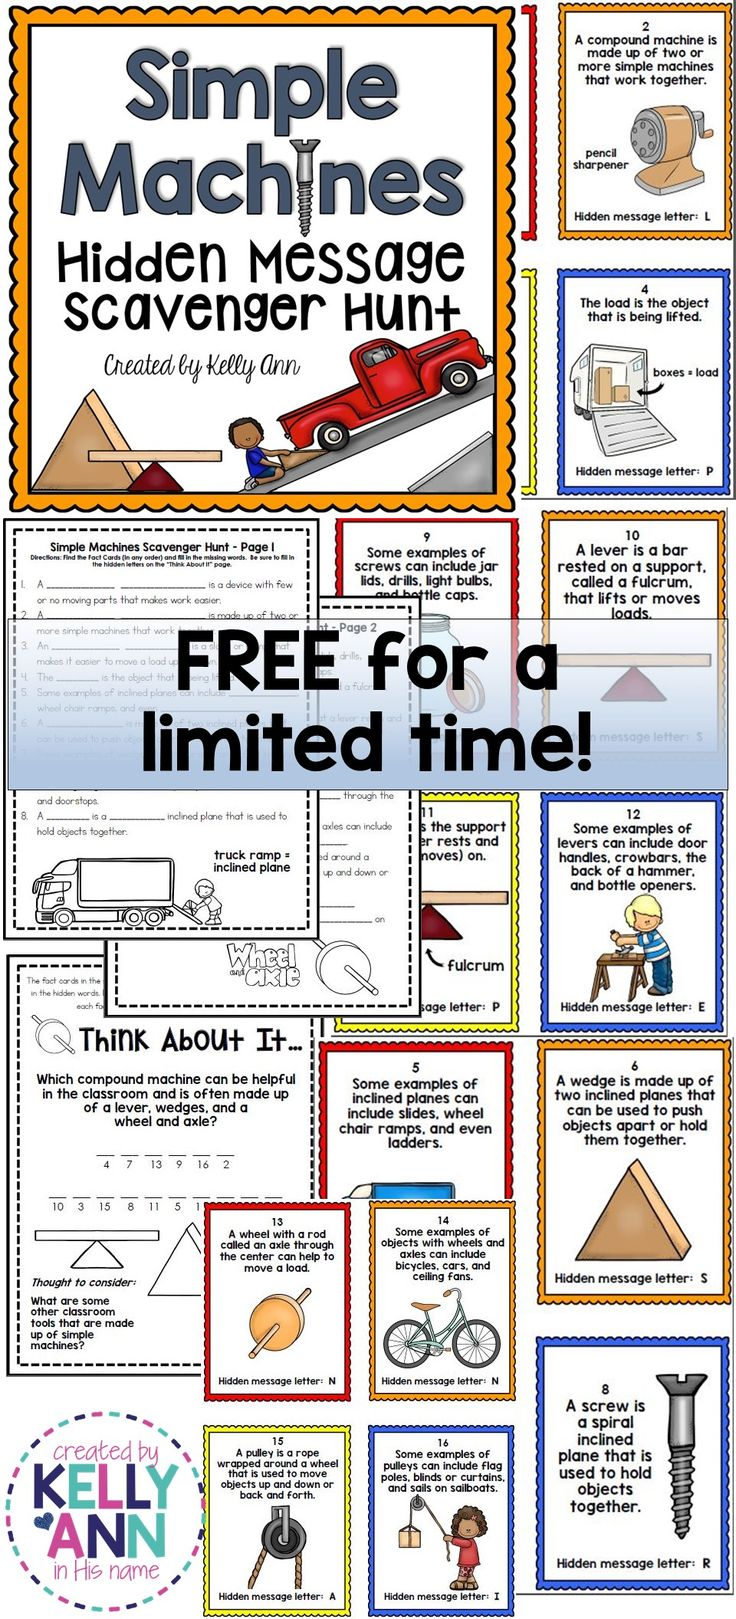 Worksheets Compound Machines Worksheet best 25 simple machines ideas on pinterest machine wheels gears and axels